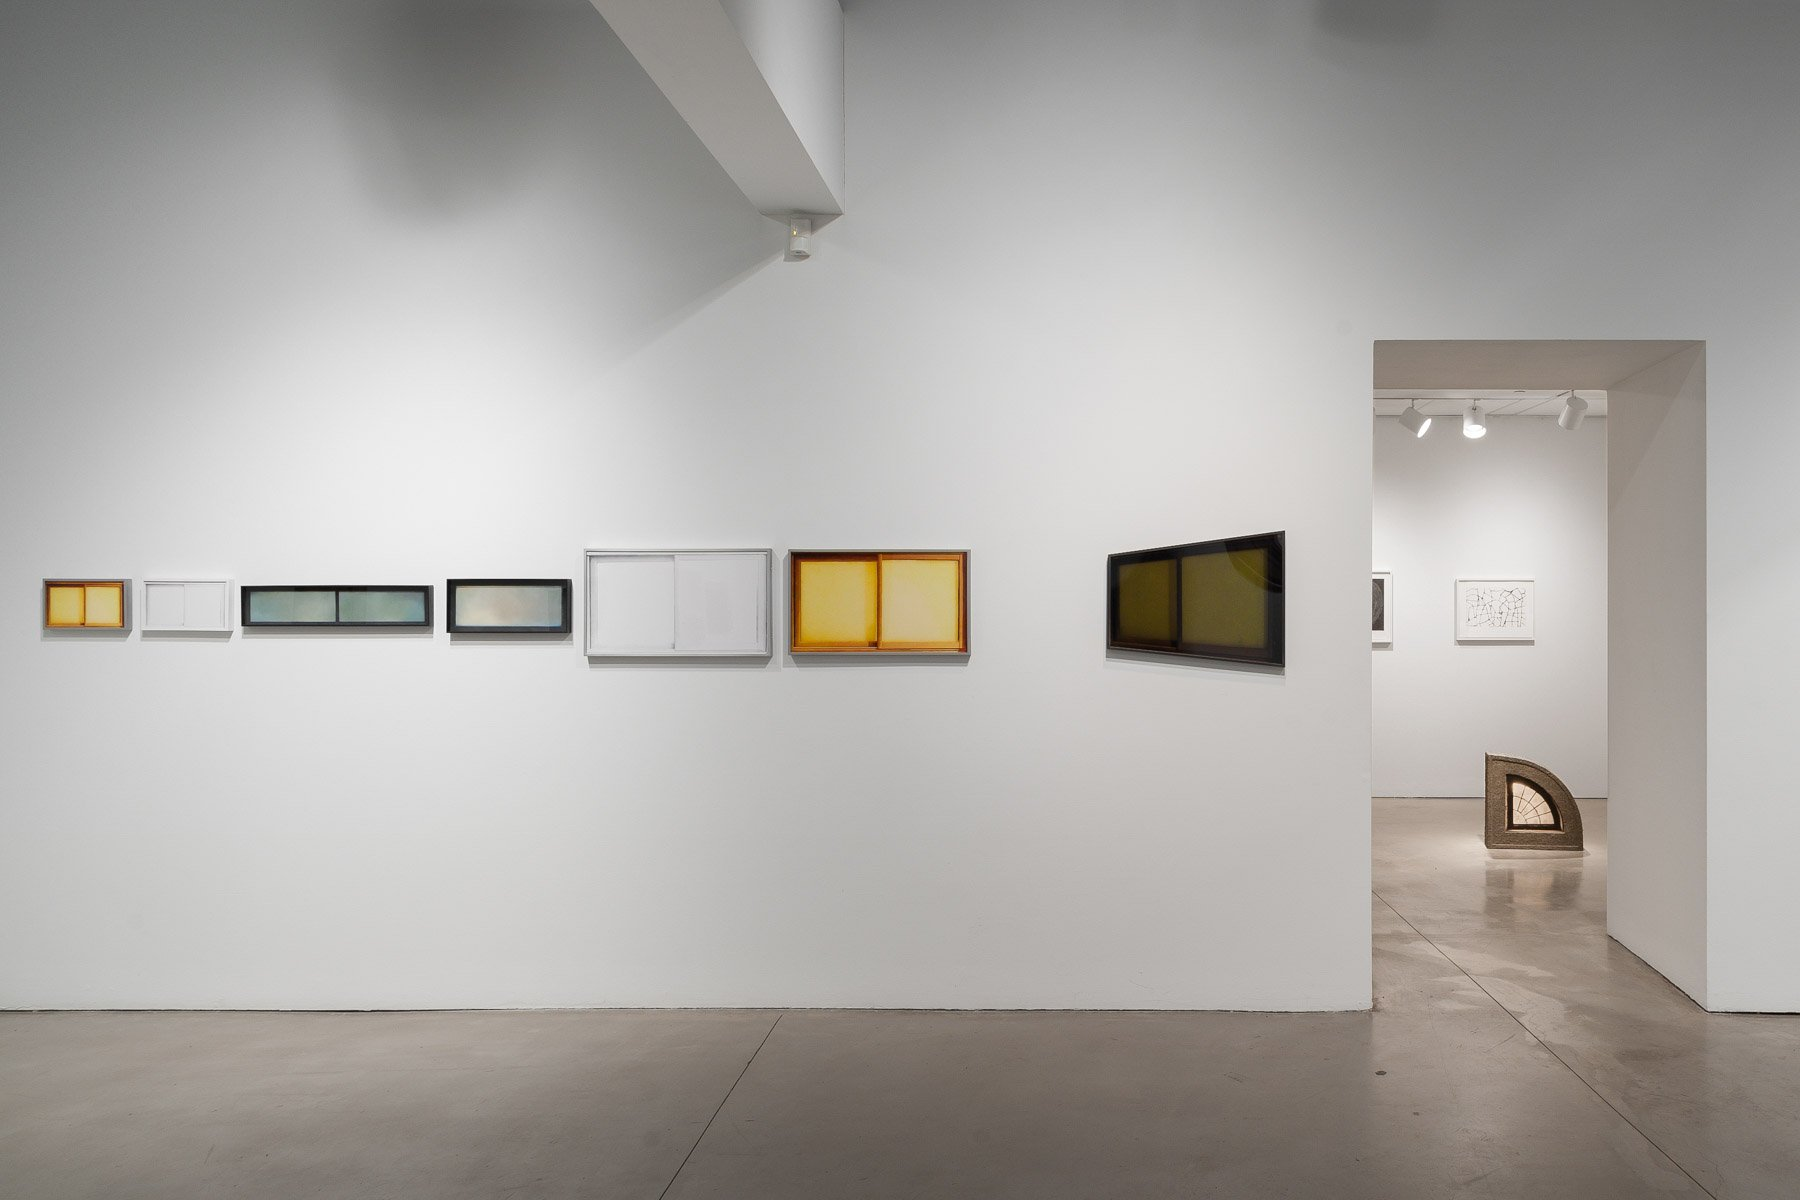 installation view of Gwenn Thomas' artwork